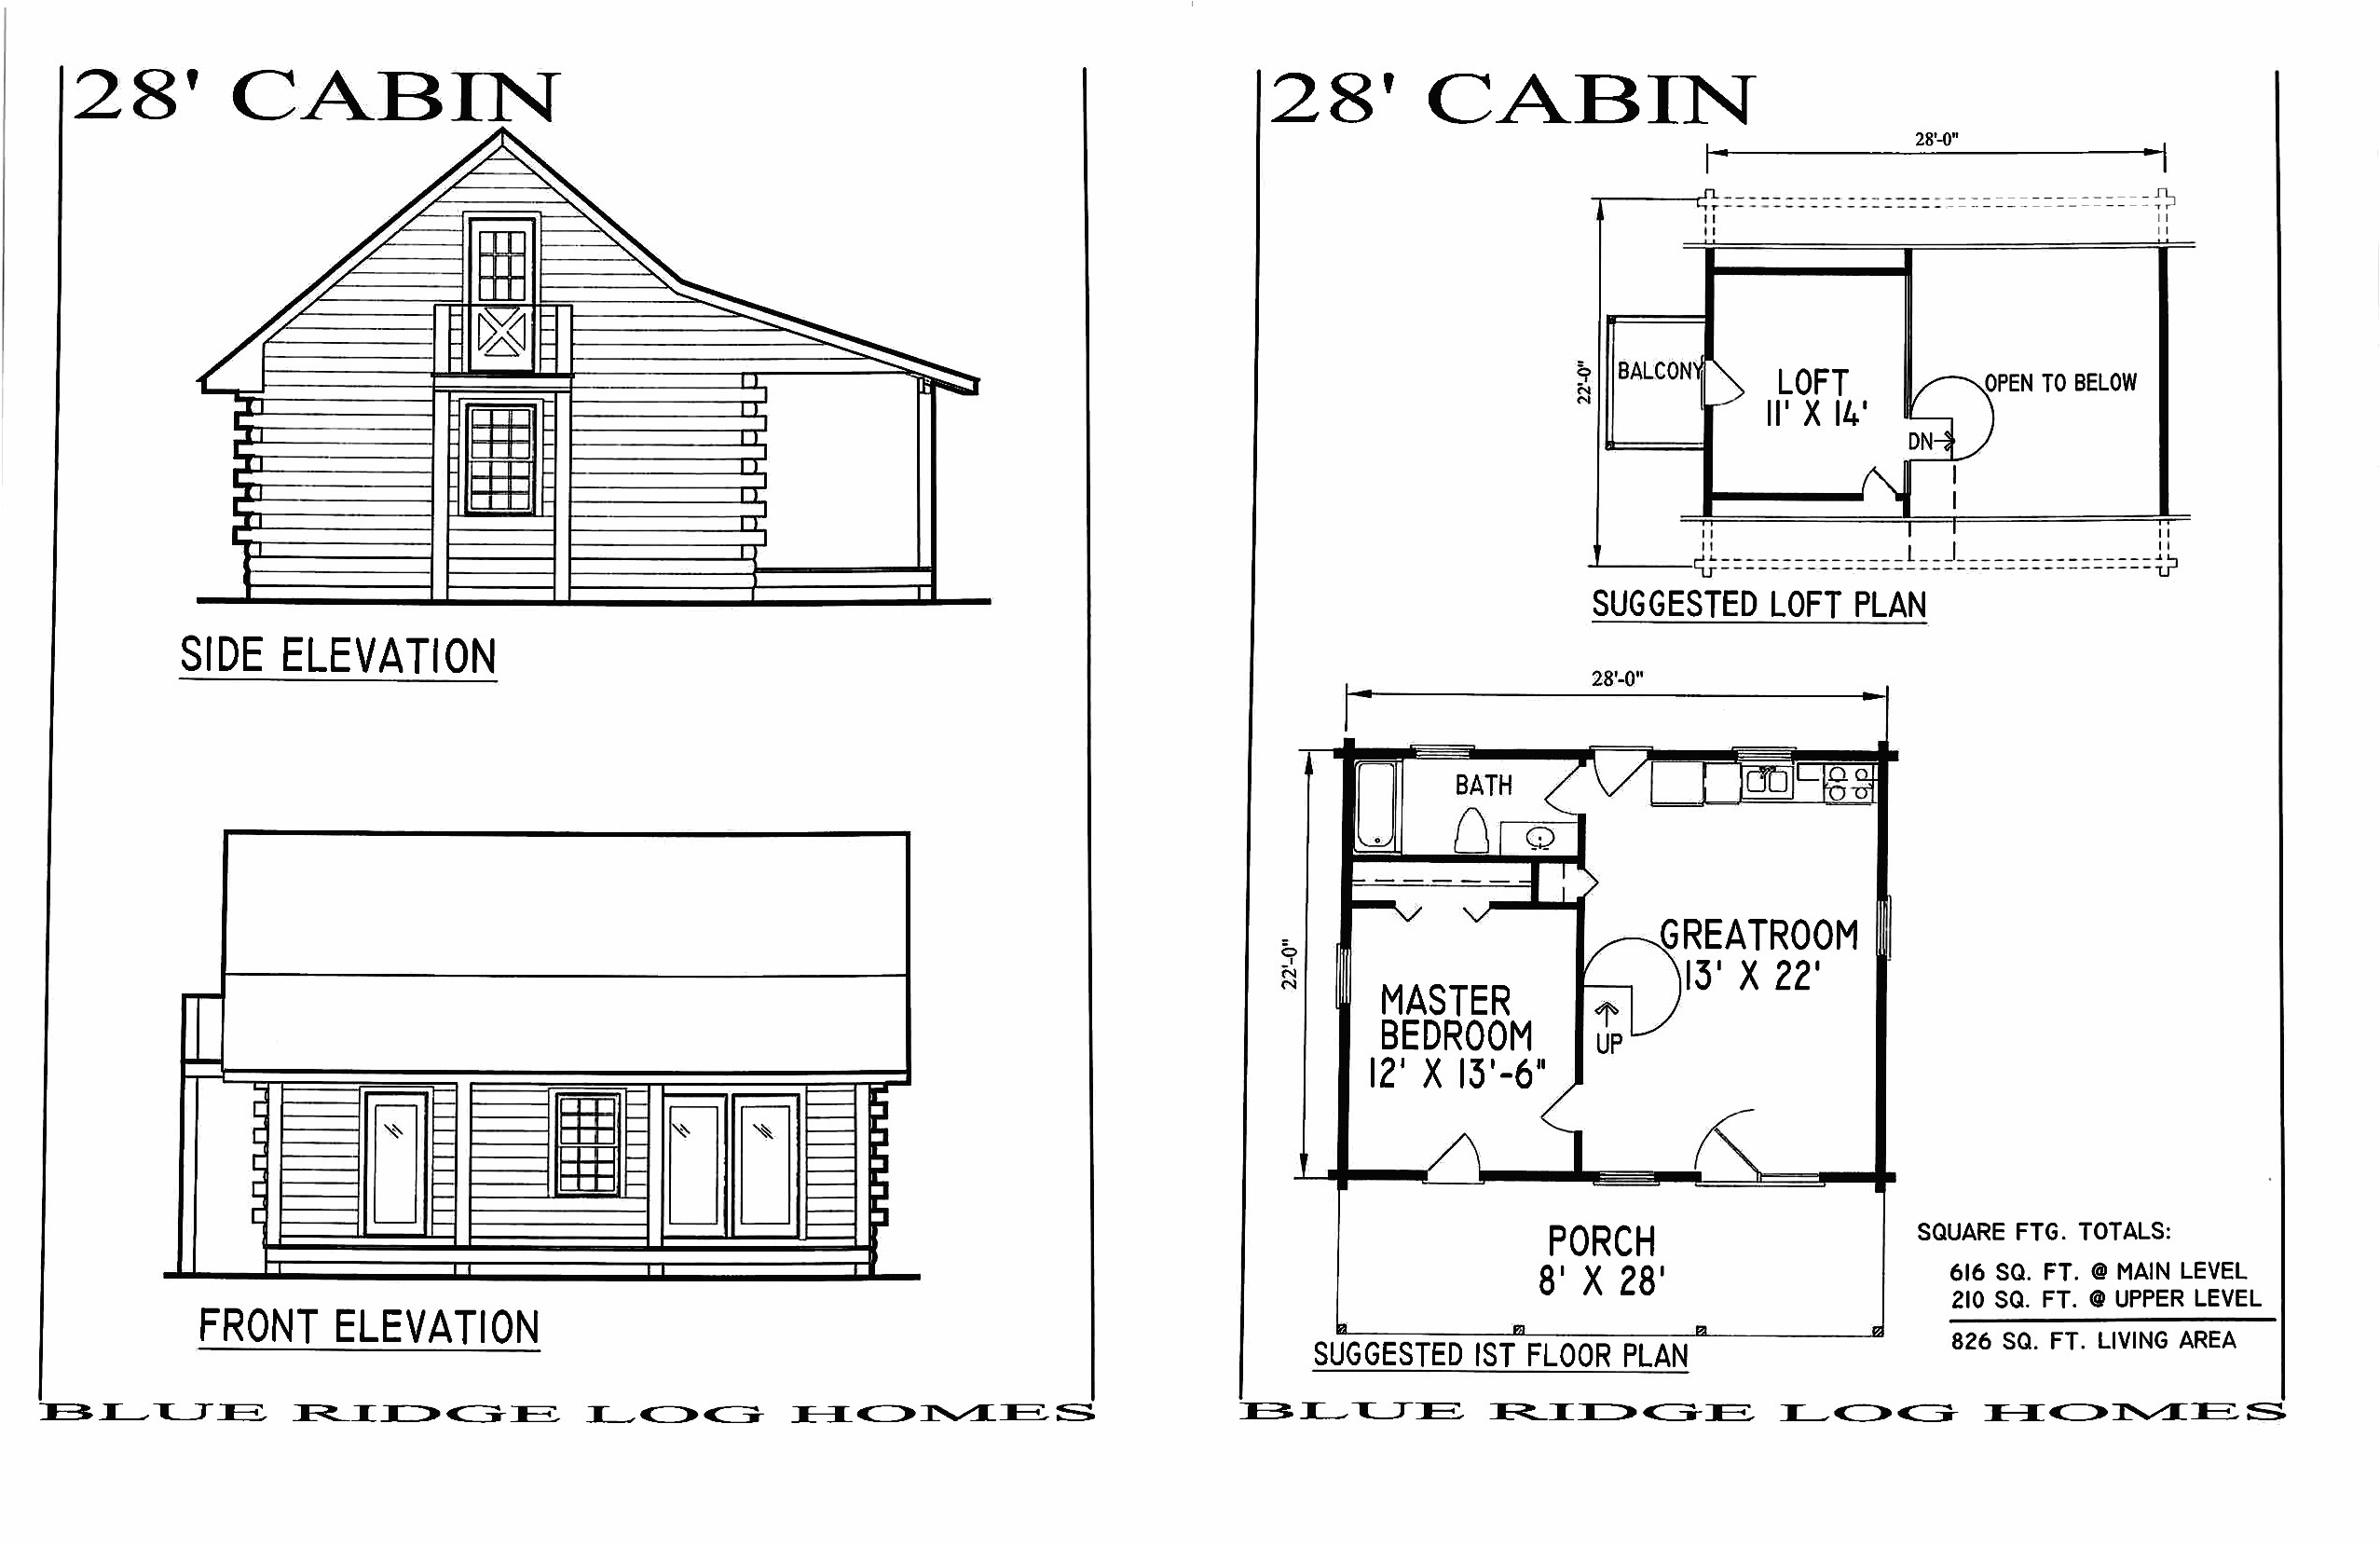 awesome house plans 800 sq ft house plans inspirational awesome house plans less than